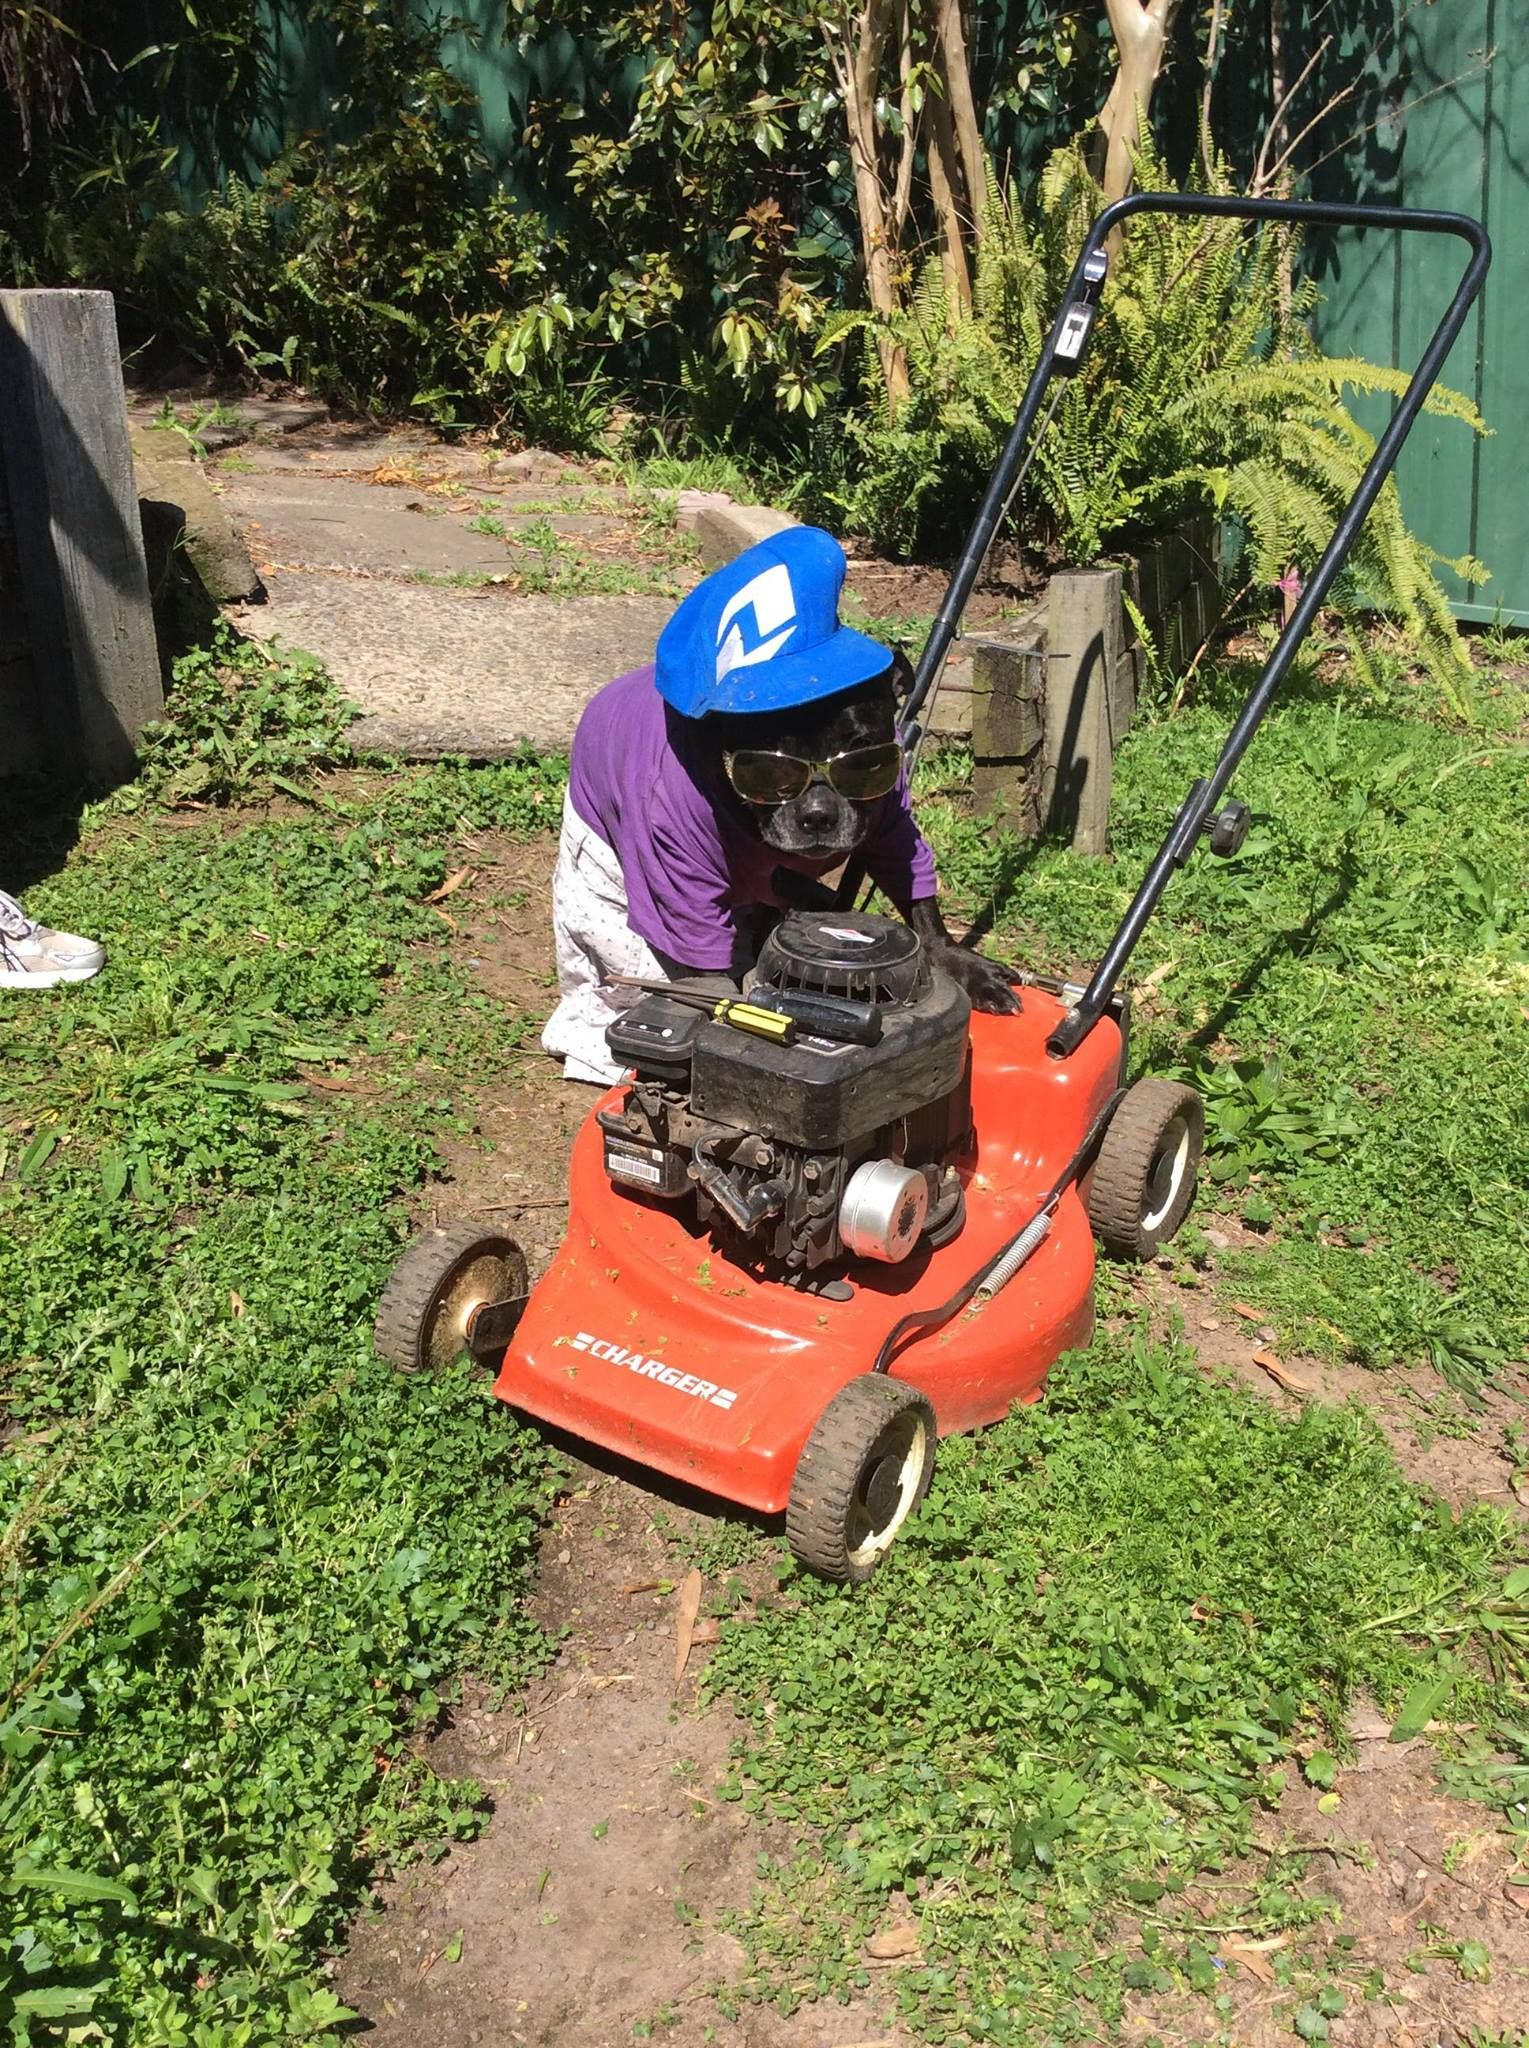 Tough Job With All Of The Rain We Have Had Good Luck Rollie Lol Outdoor Power Equipment Lawn Mower Push Lawnmower